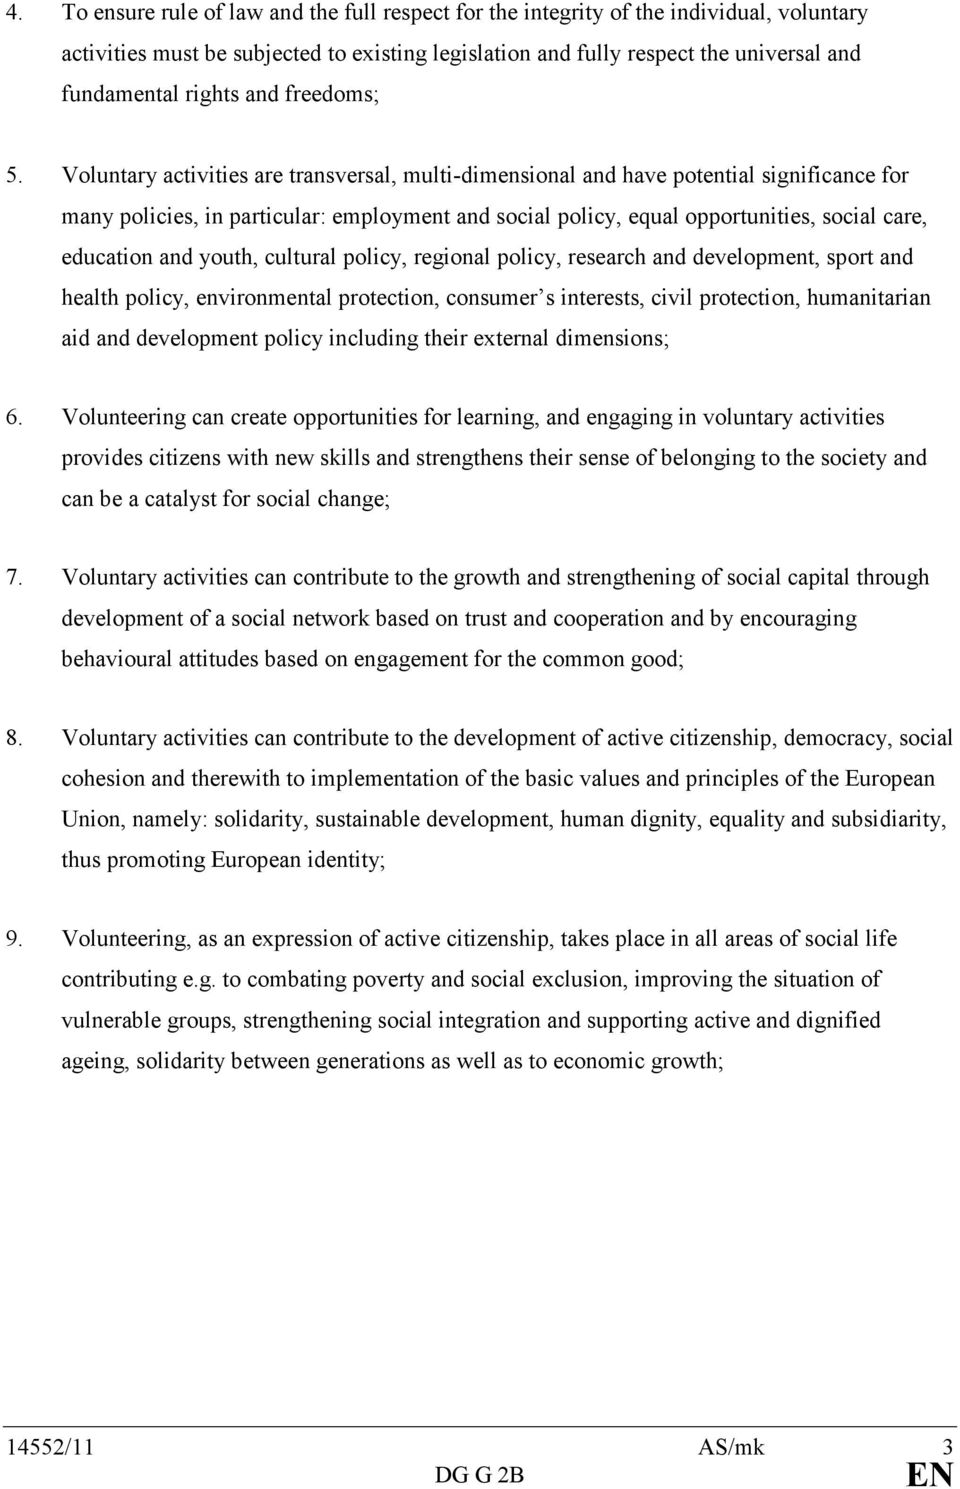 Voluntary activities are transversal, multi-dimensional and have potential significance for many policies, in particular: employment and social policy, equal opportunities, social care, education and